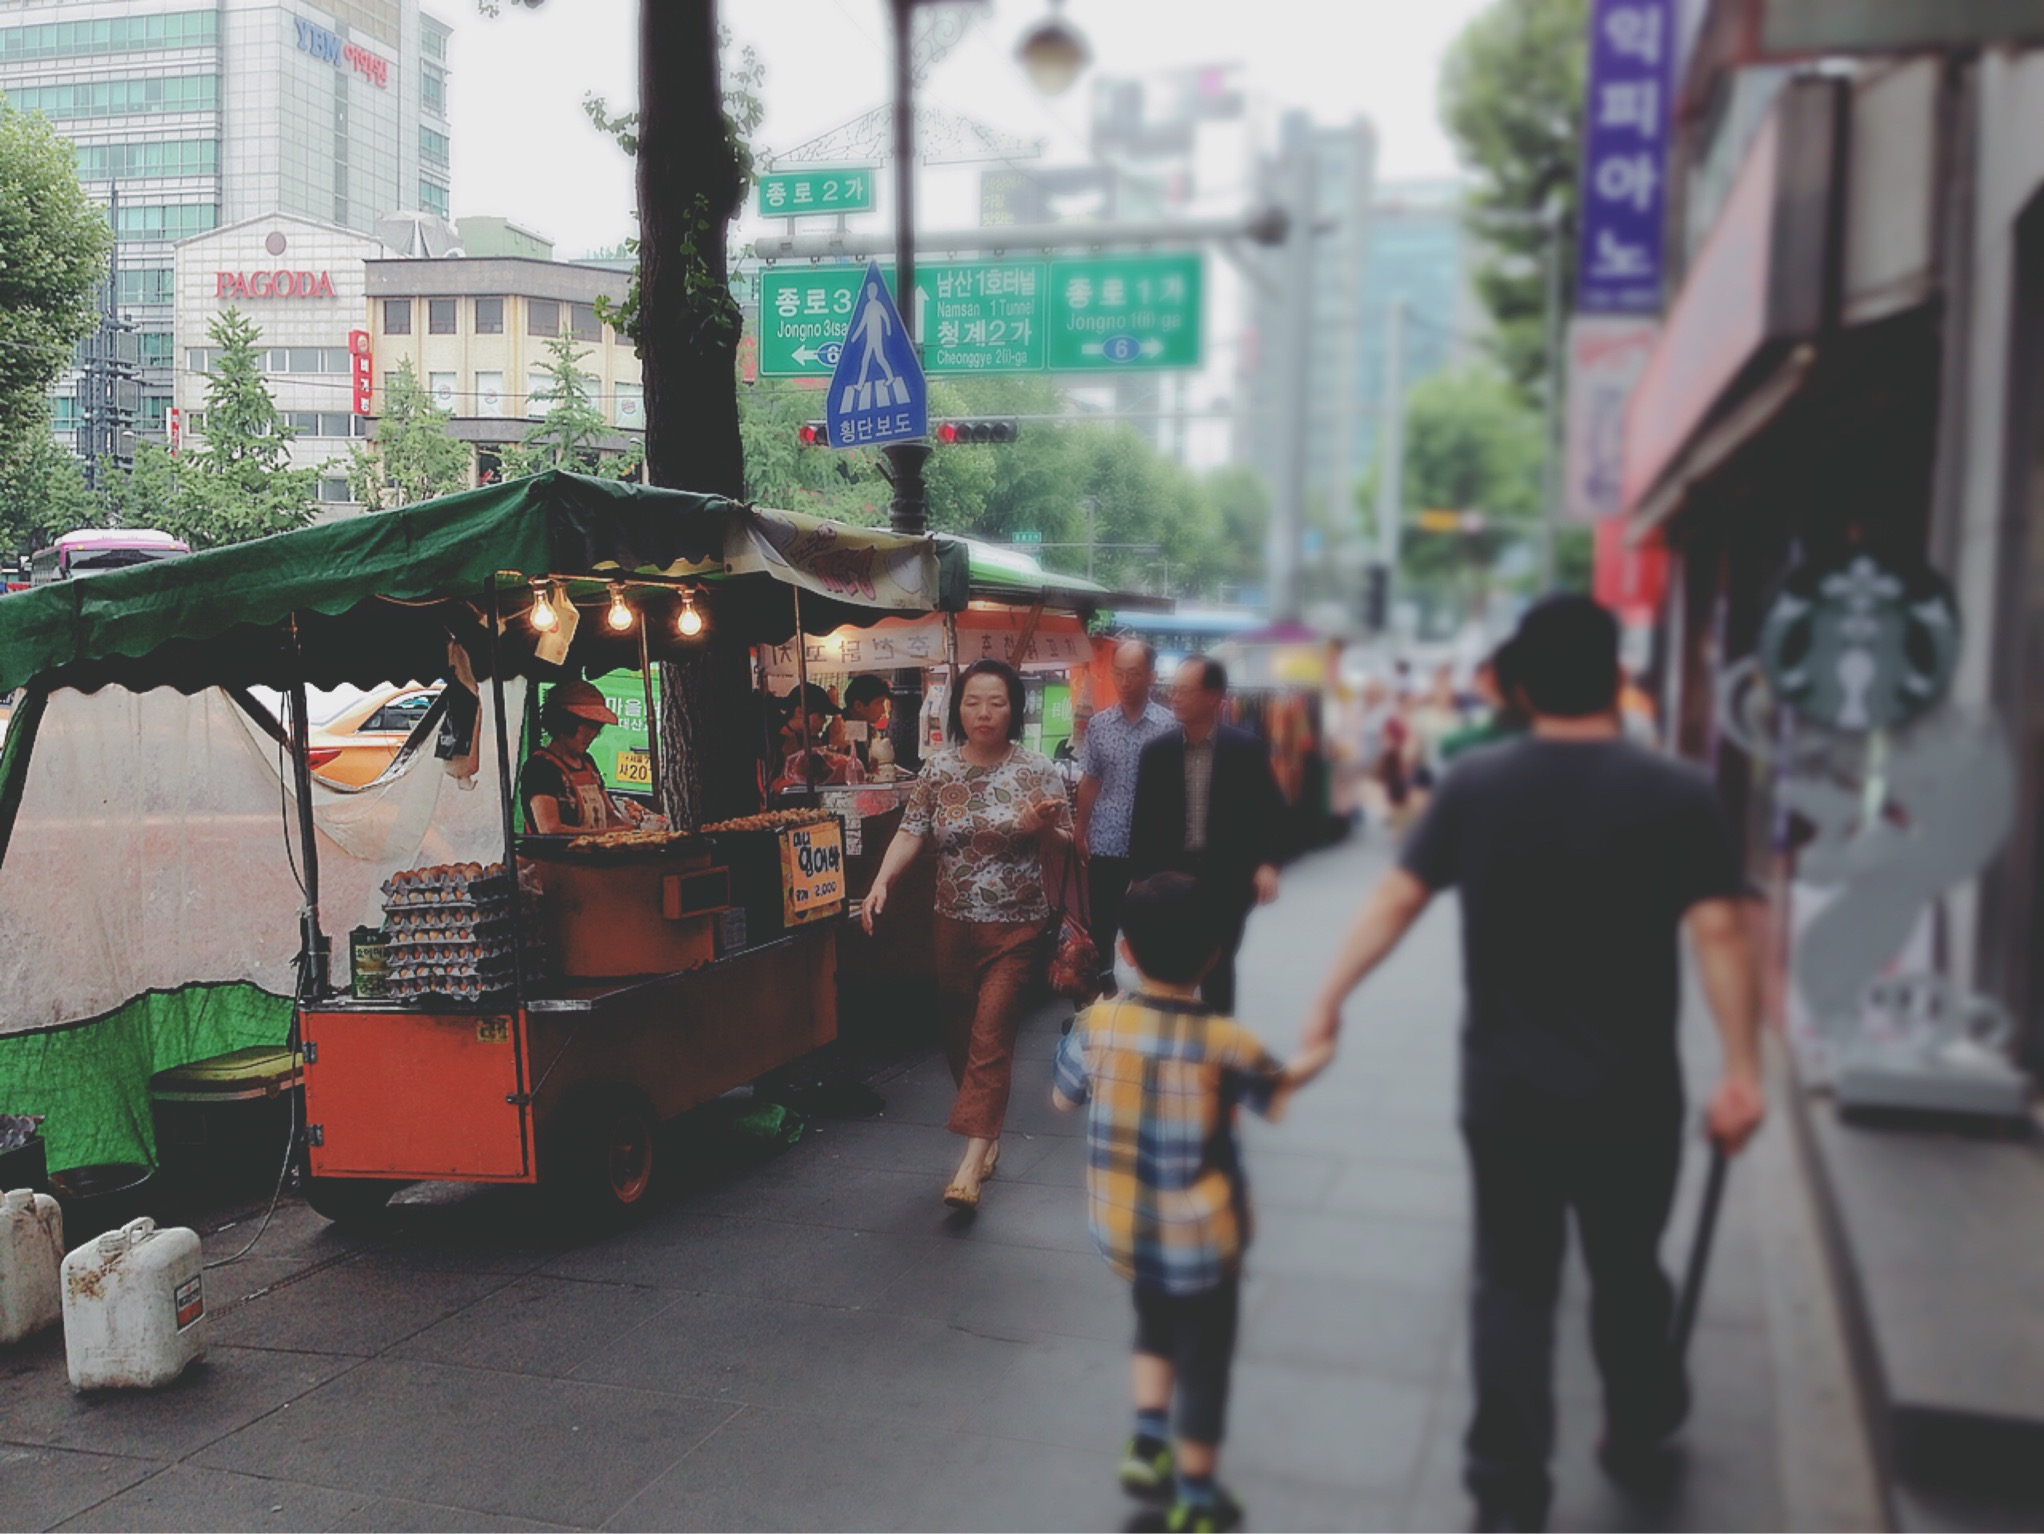 insadong gil street food vendors